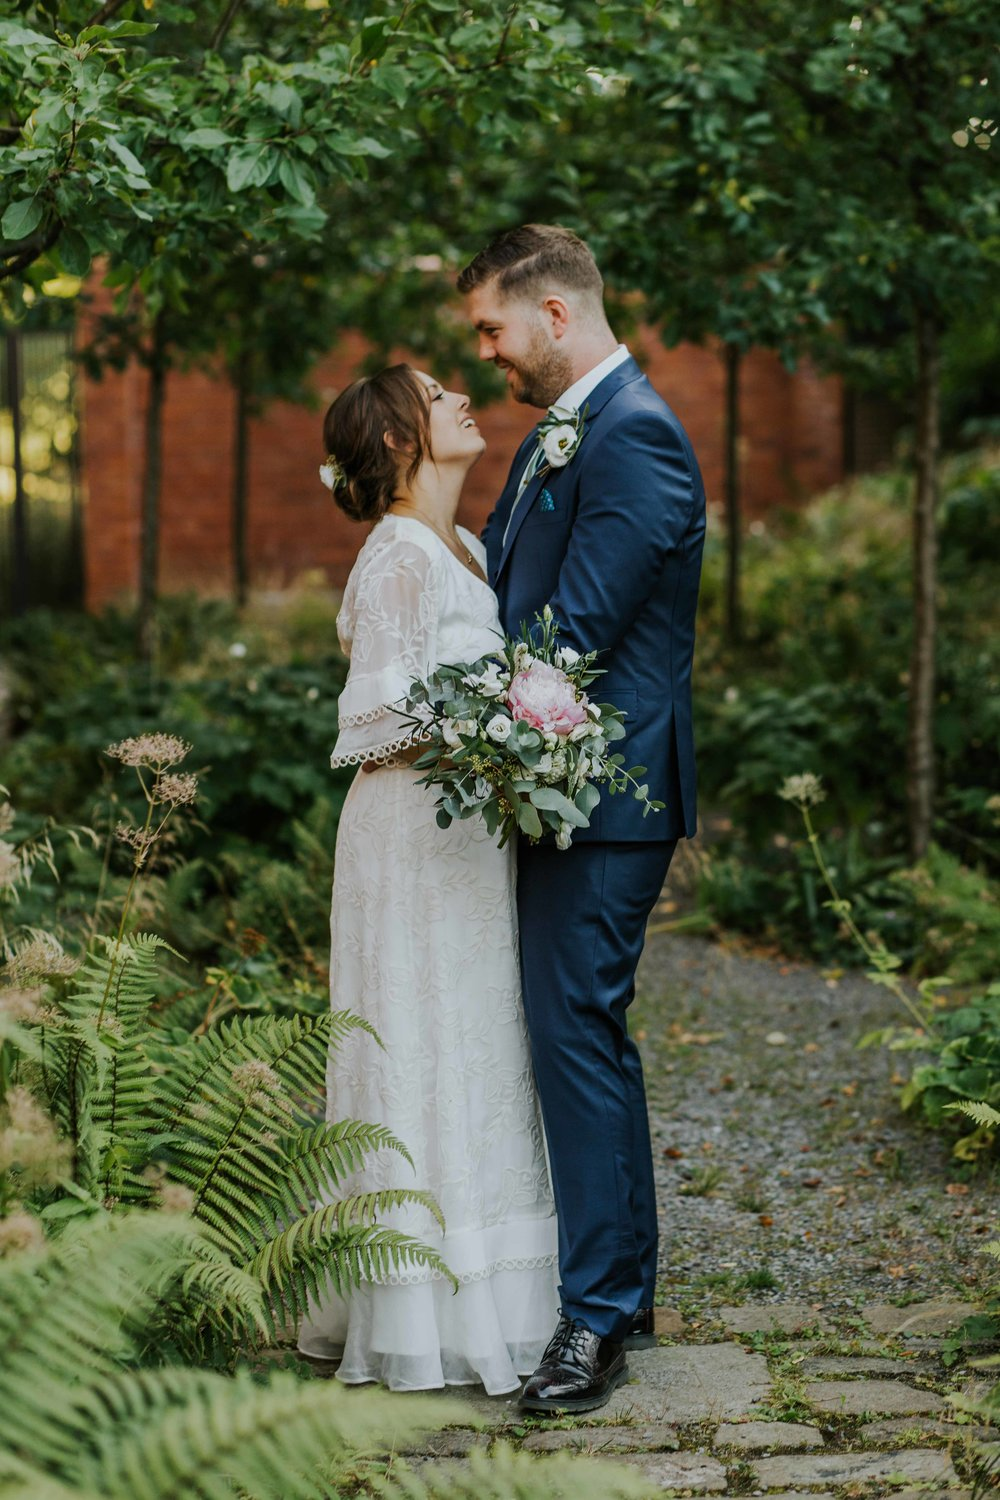 bride and groom portrait in the gardens at The Whitworth Art Gallery Manchester